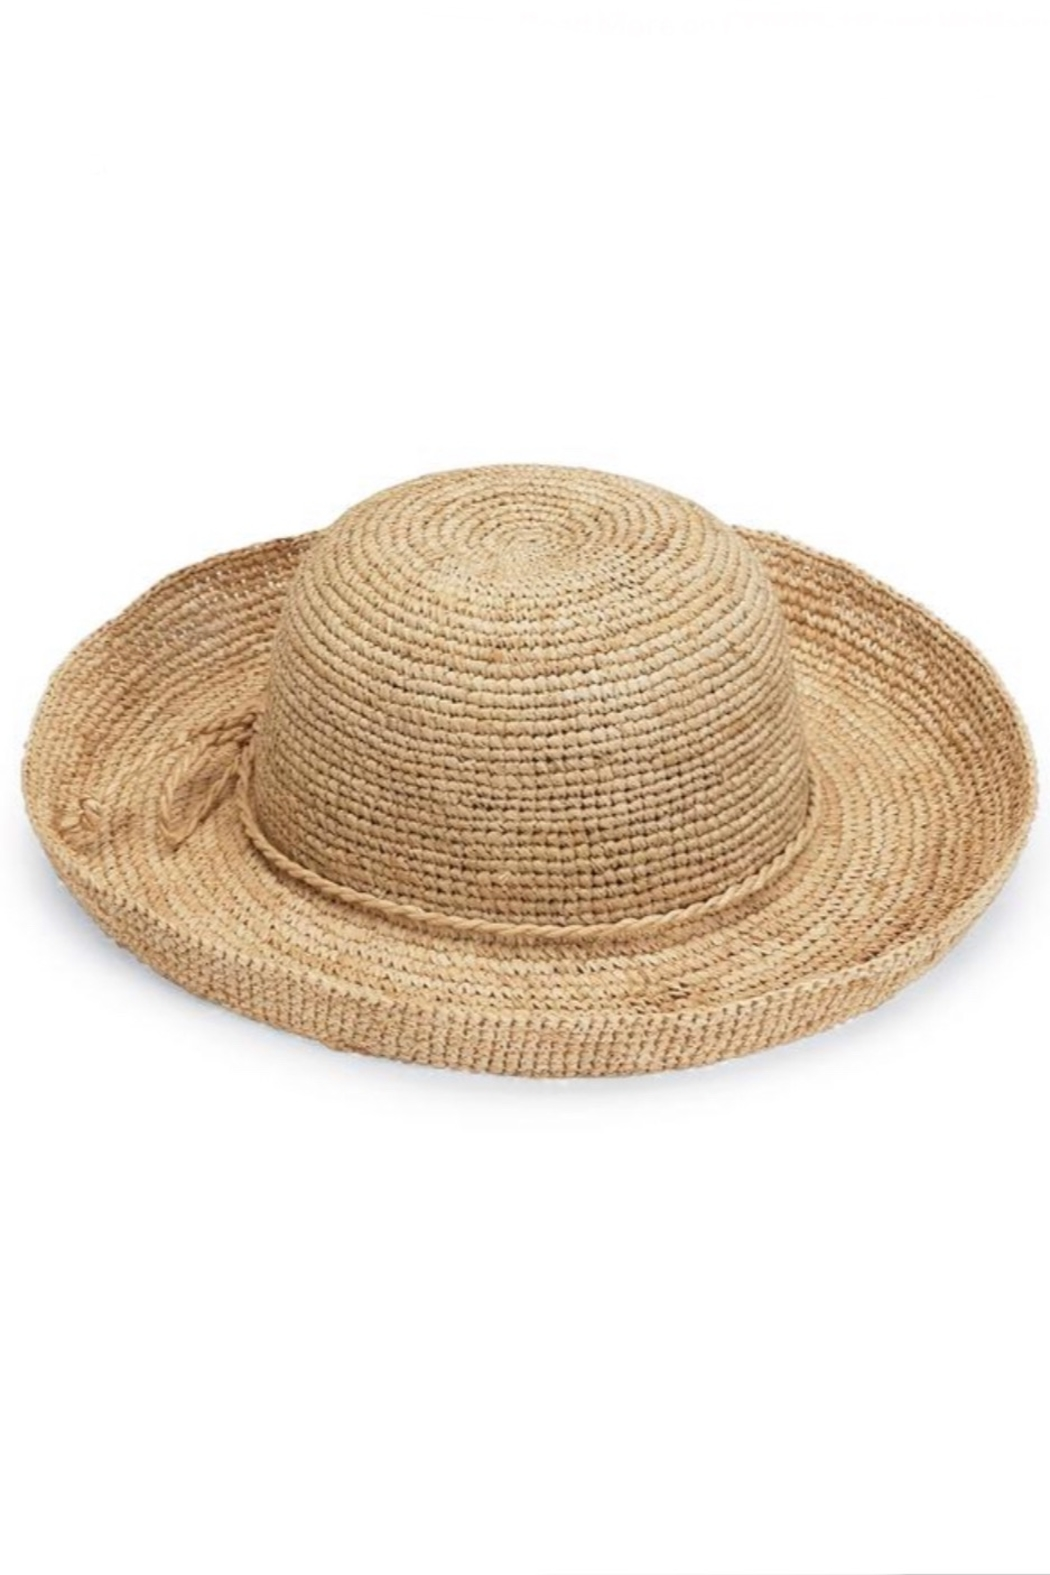 Walaroo Hats Catalina Sun Protection Hat - Main Image